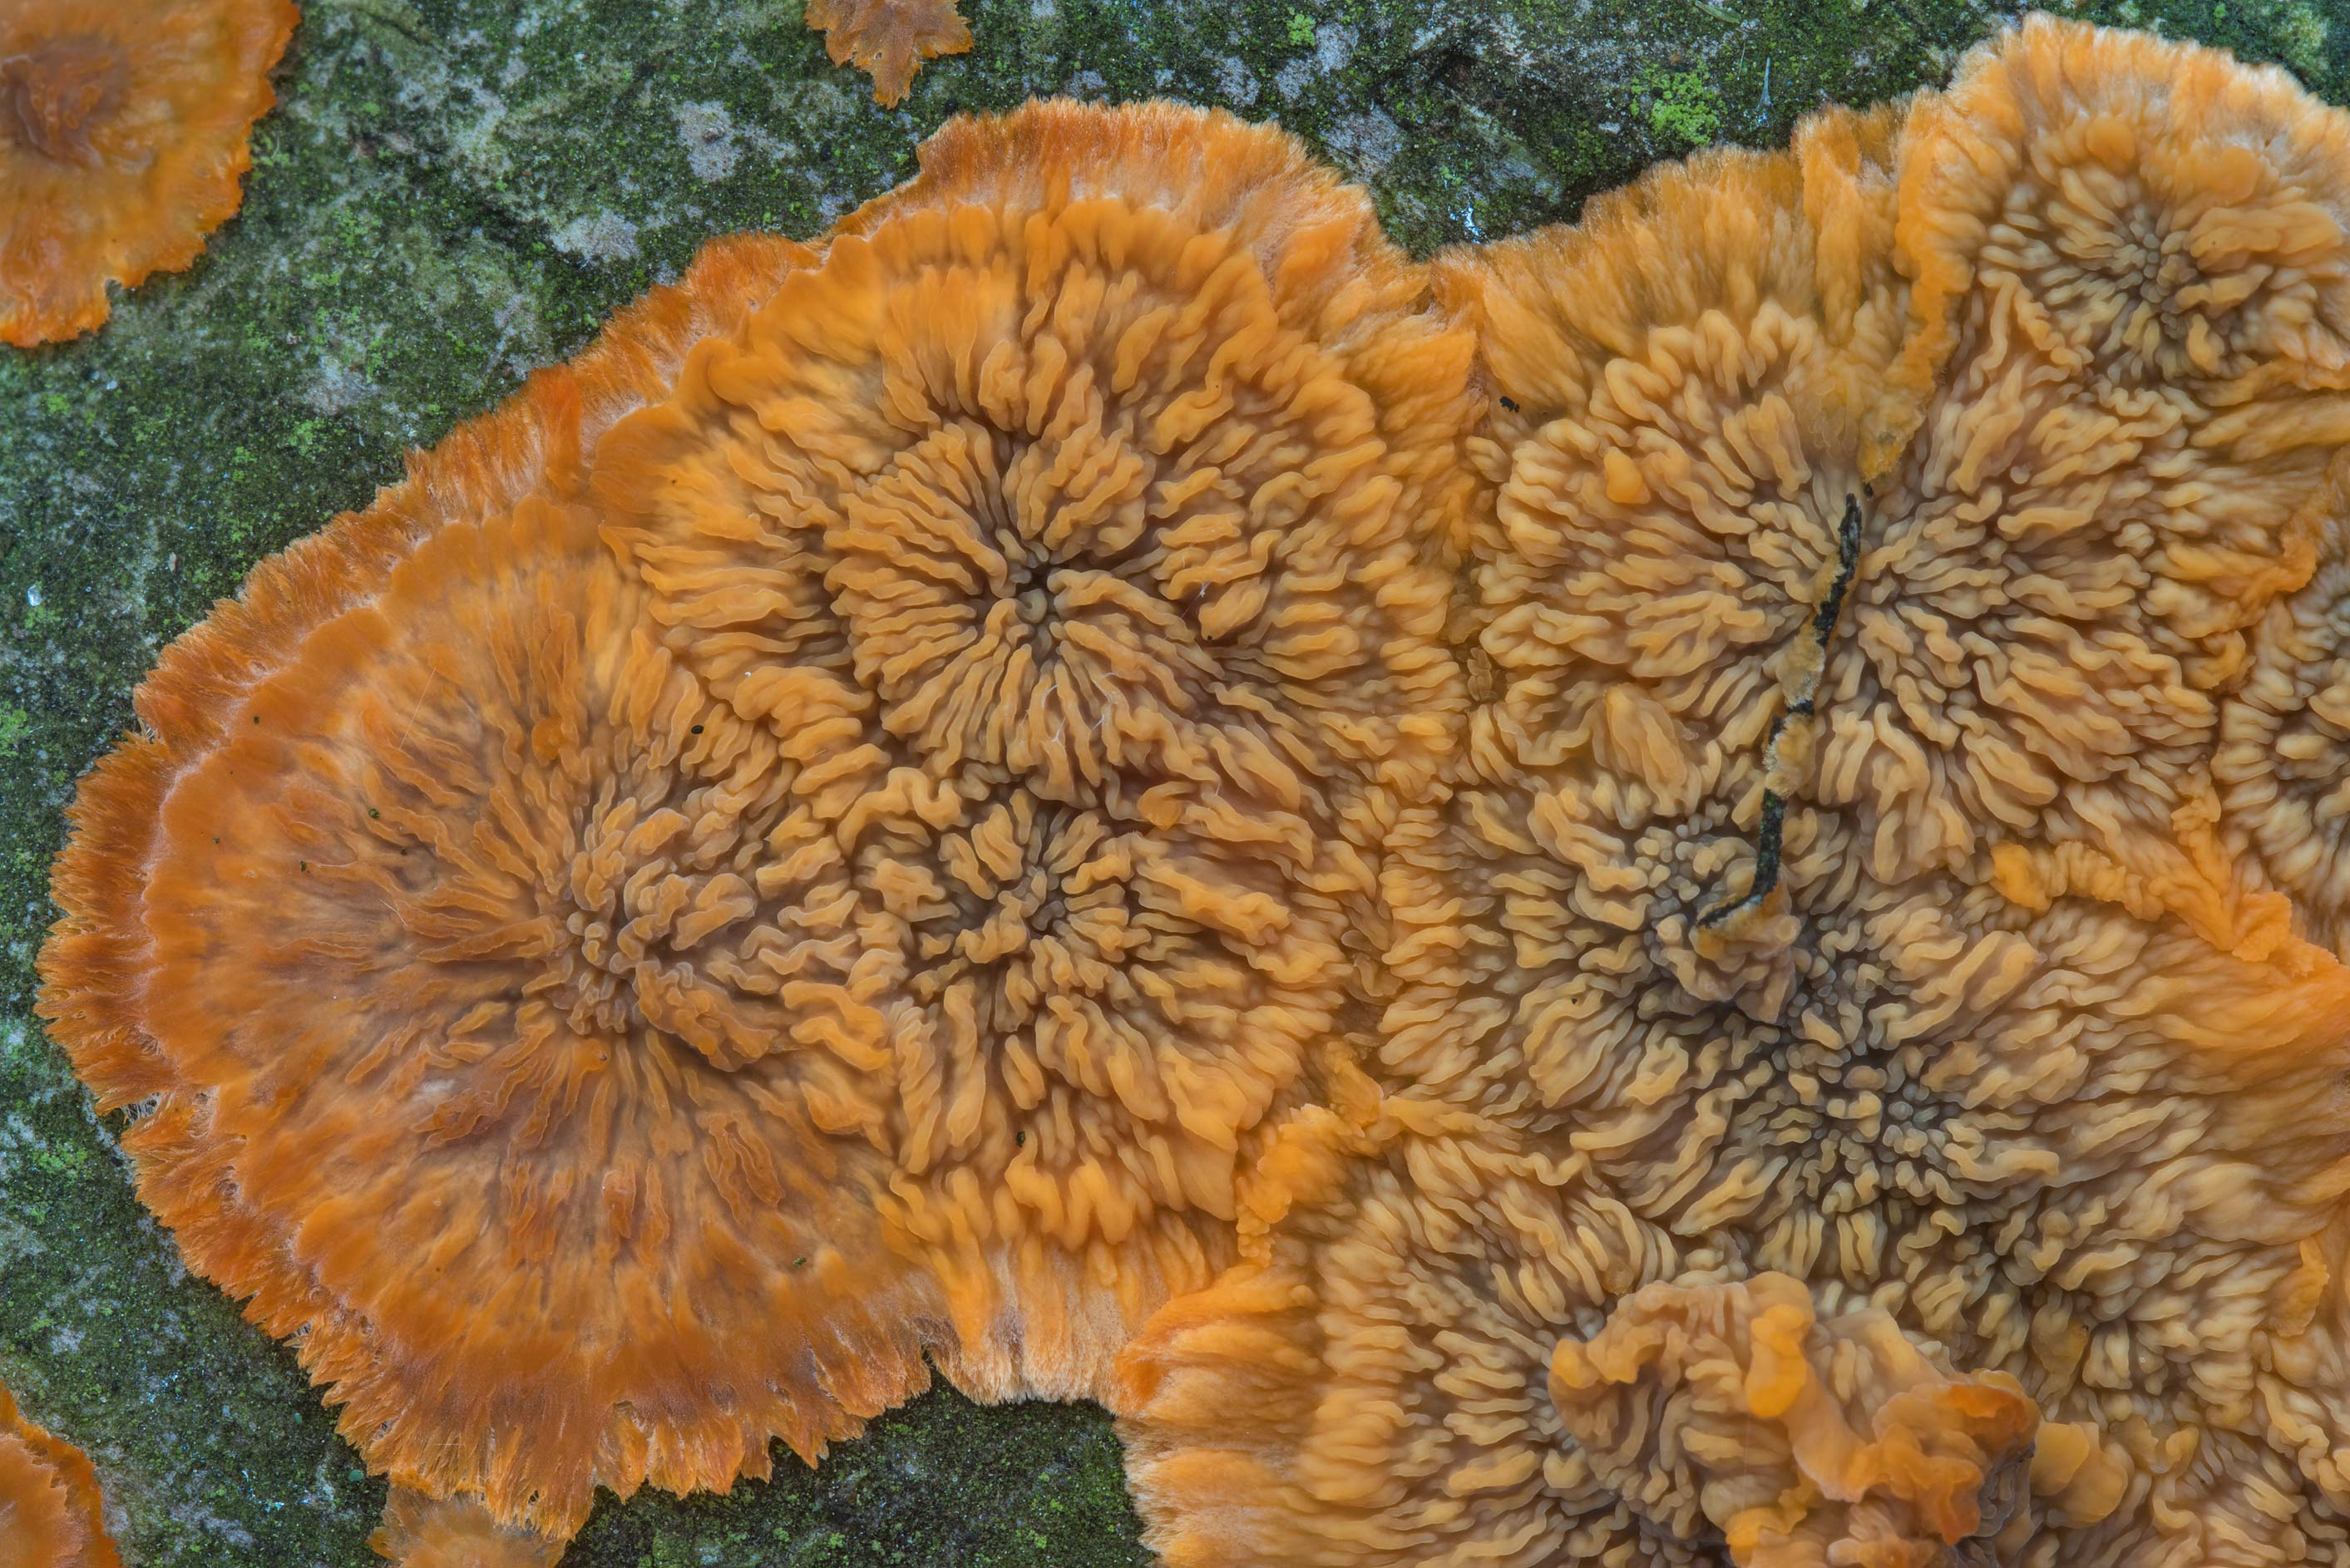 Wrinkled crust fungus (Phlebia radiata) in...a suburb of St.Petersburg. Russia